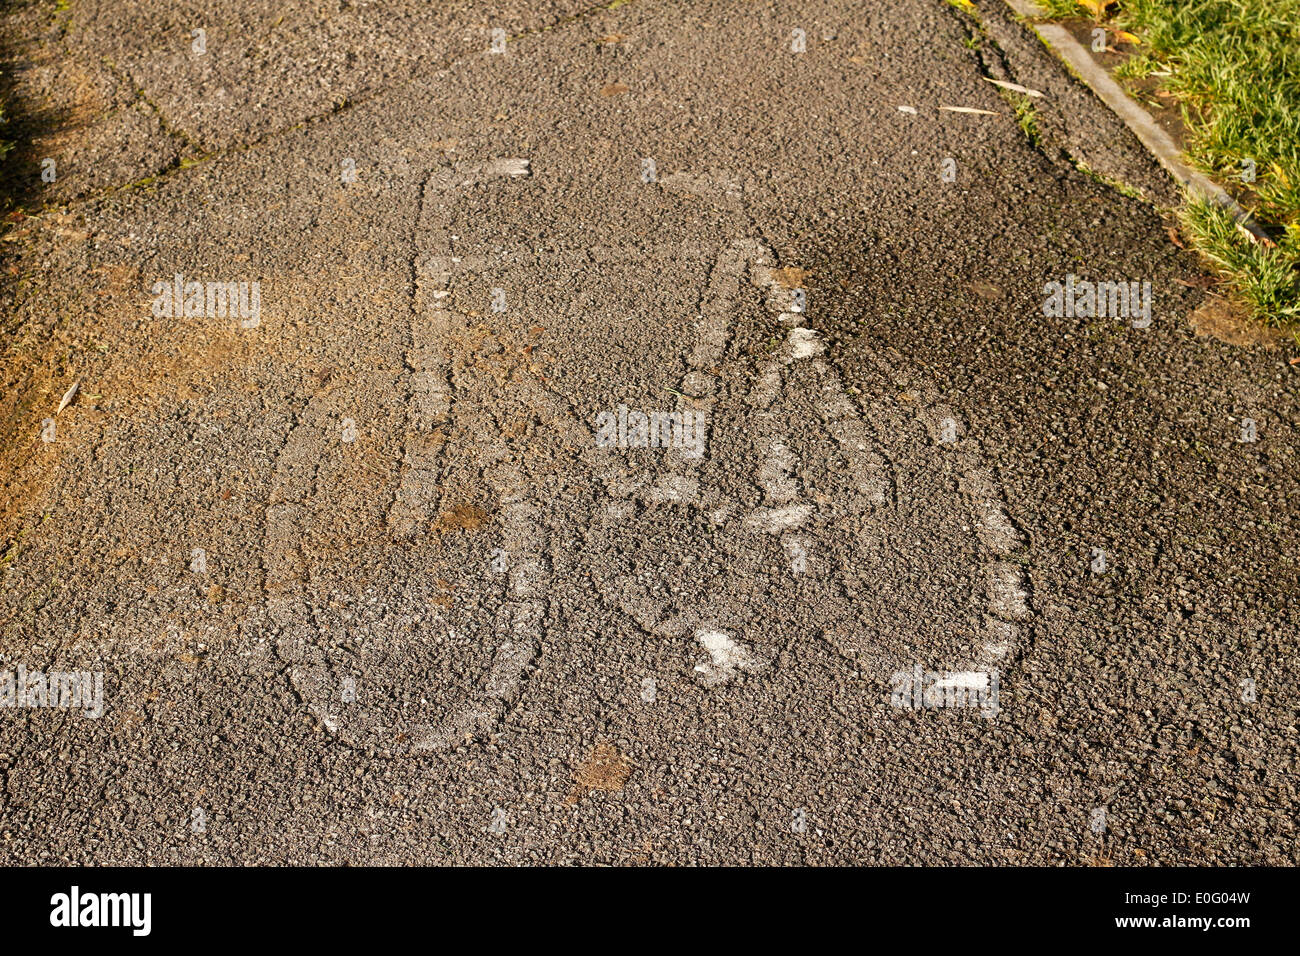 Worn out cycle path marking  in Bradley Stoke, Bristol, November 2013 - Stock Image